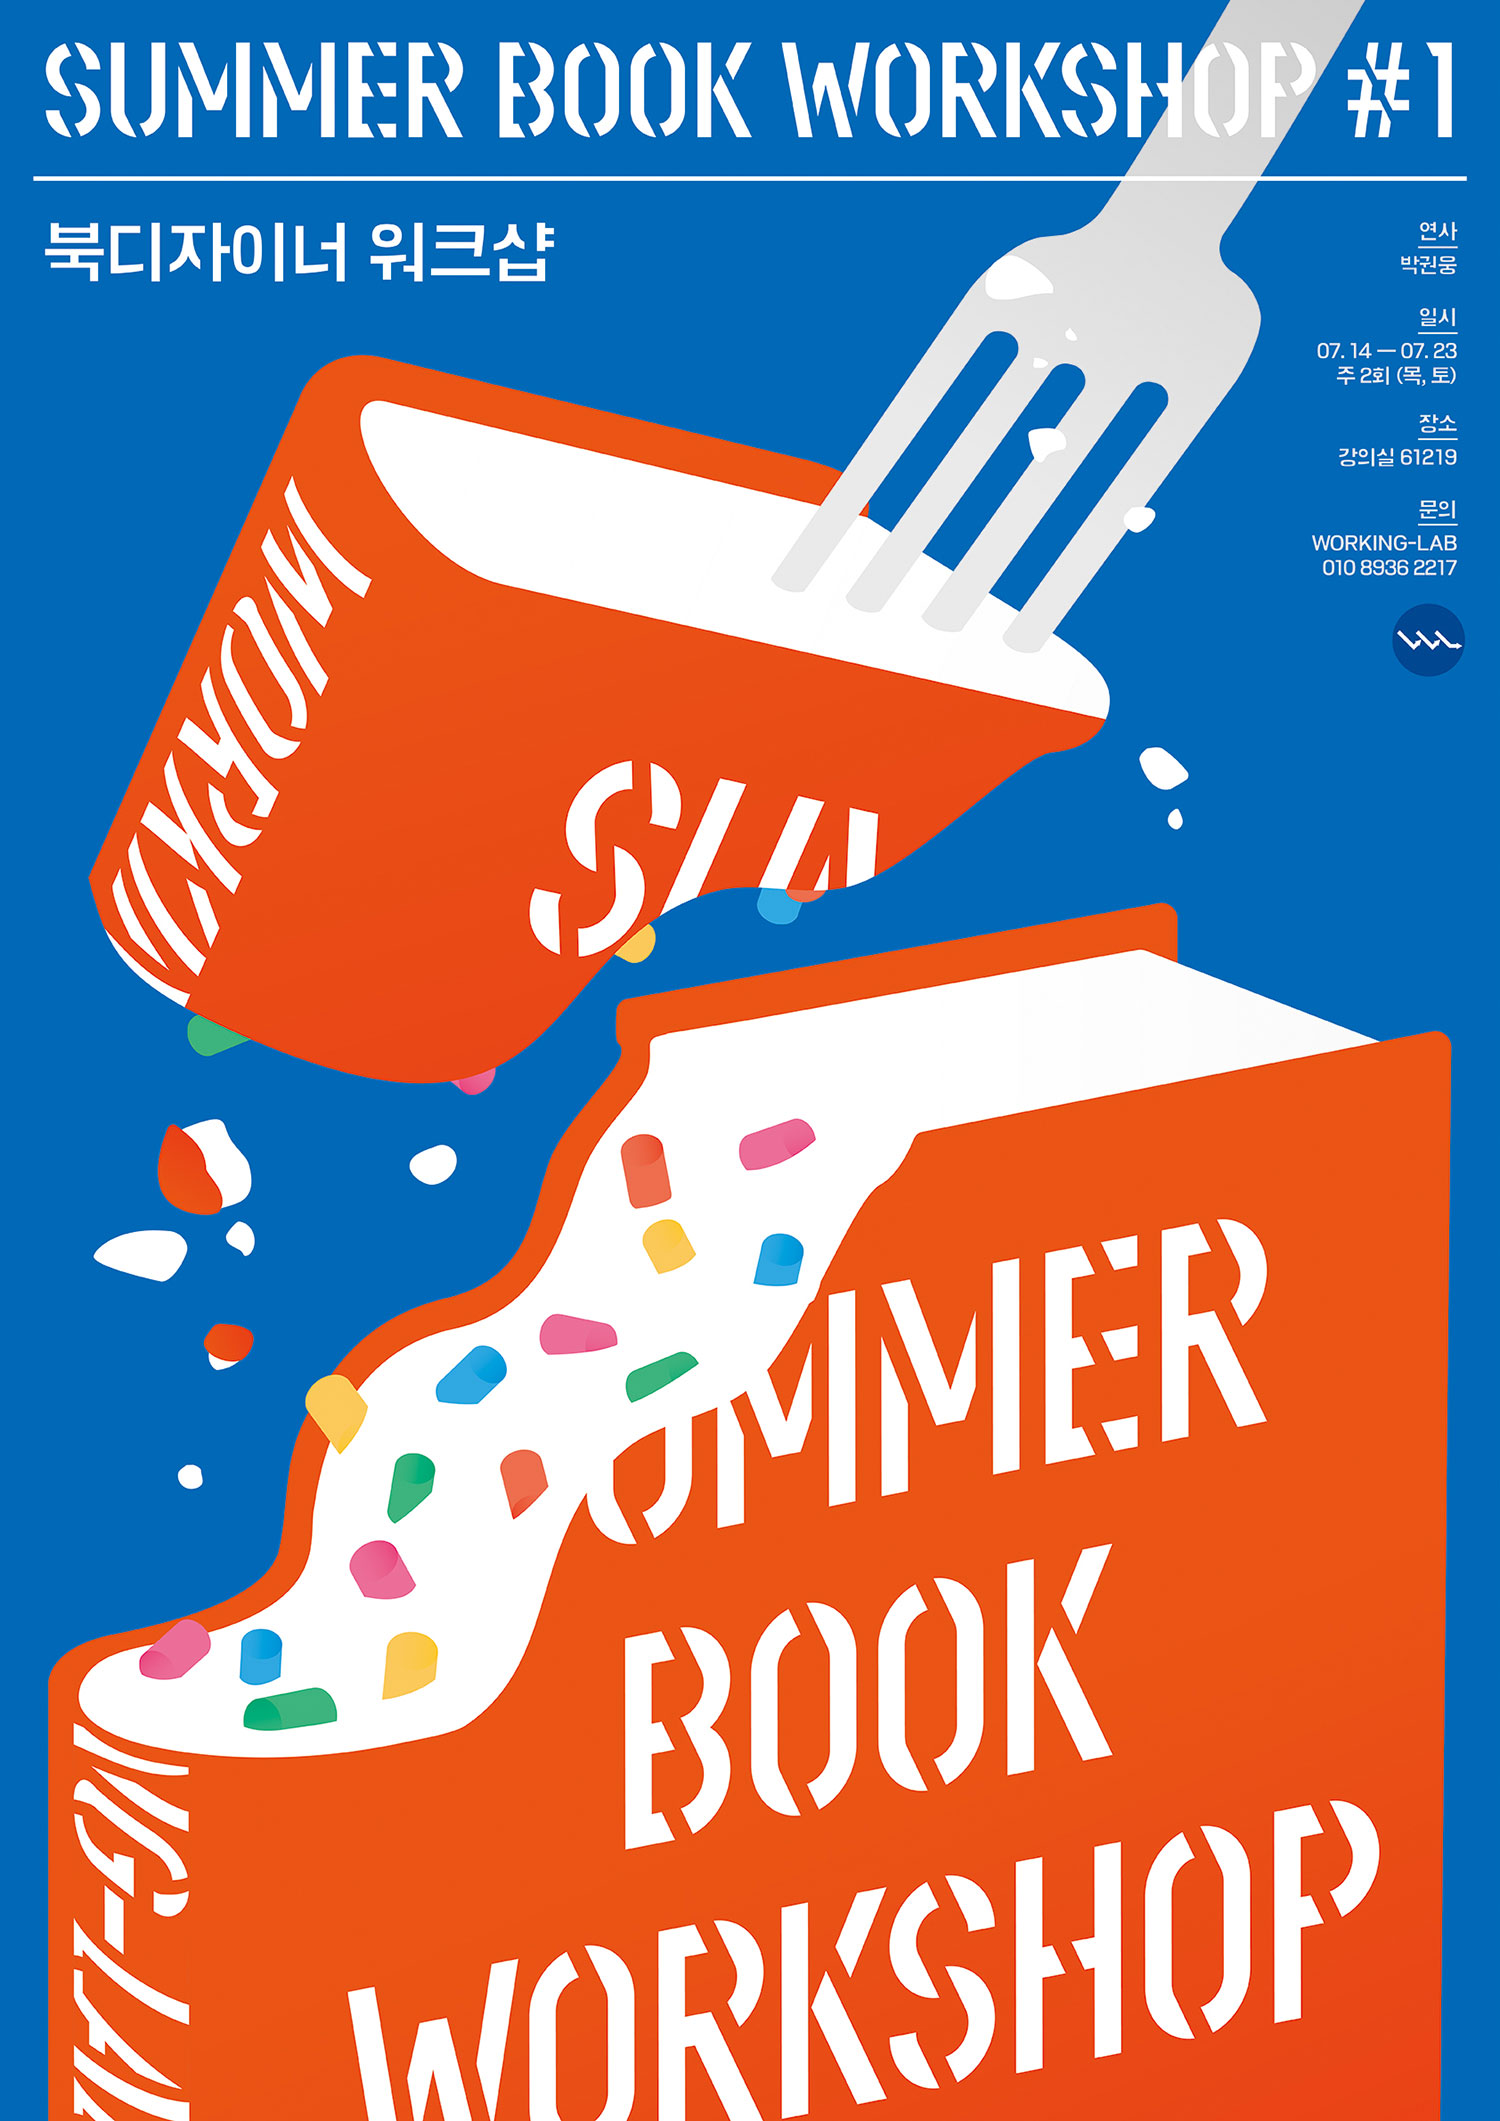 Summer Book Workshop #1